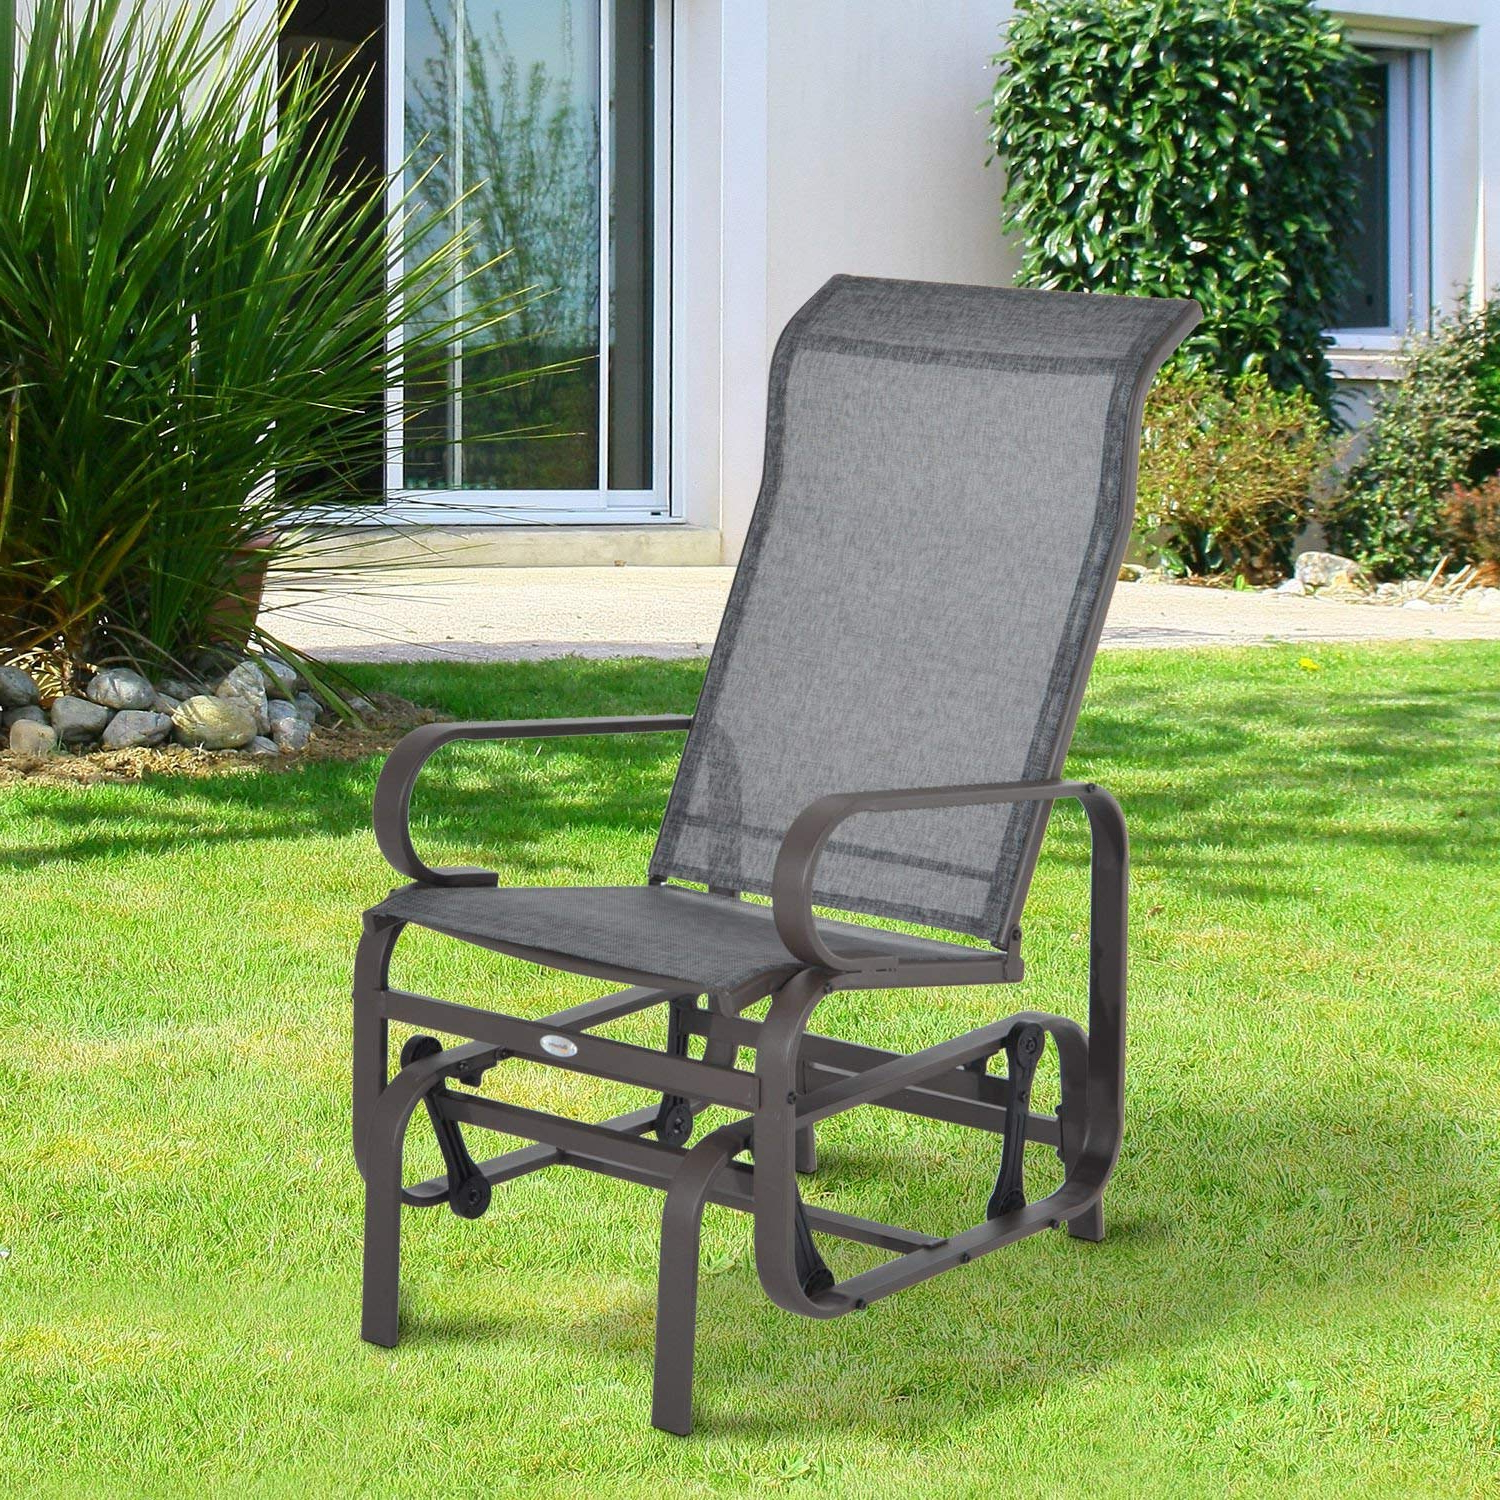 Outdoor Patio Swing Glider Bench Chair S For Popular Amazon : New Patio Porch Glider Bench Swing Sling Chair (Gallery 23 of 30)